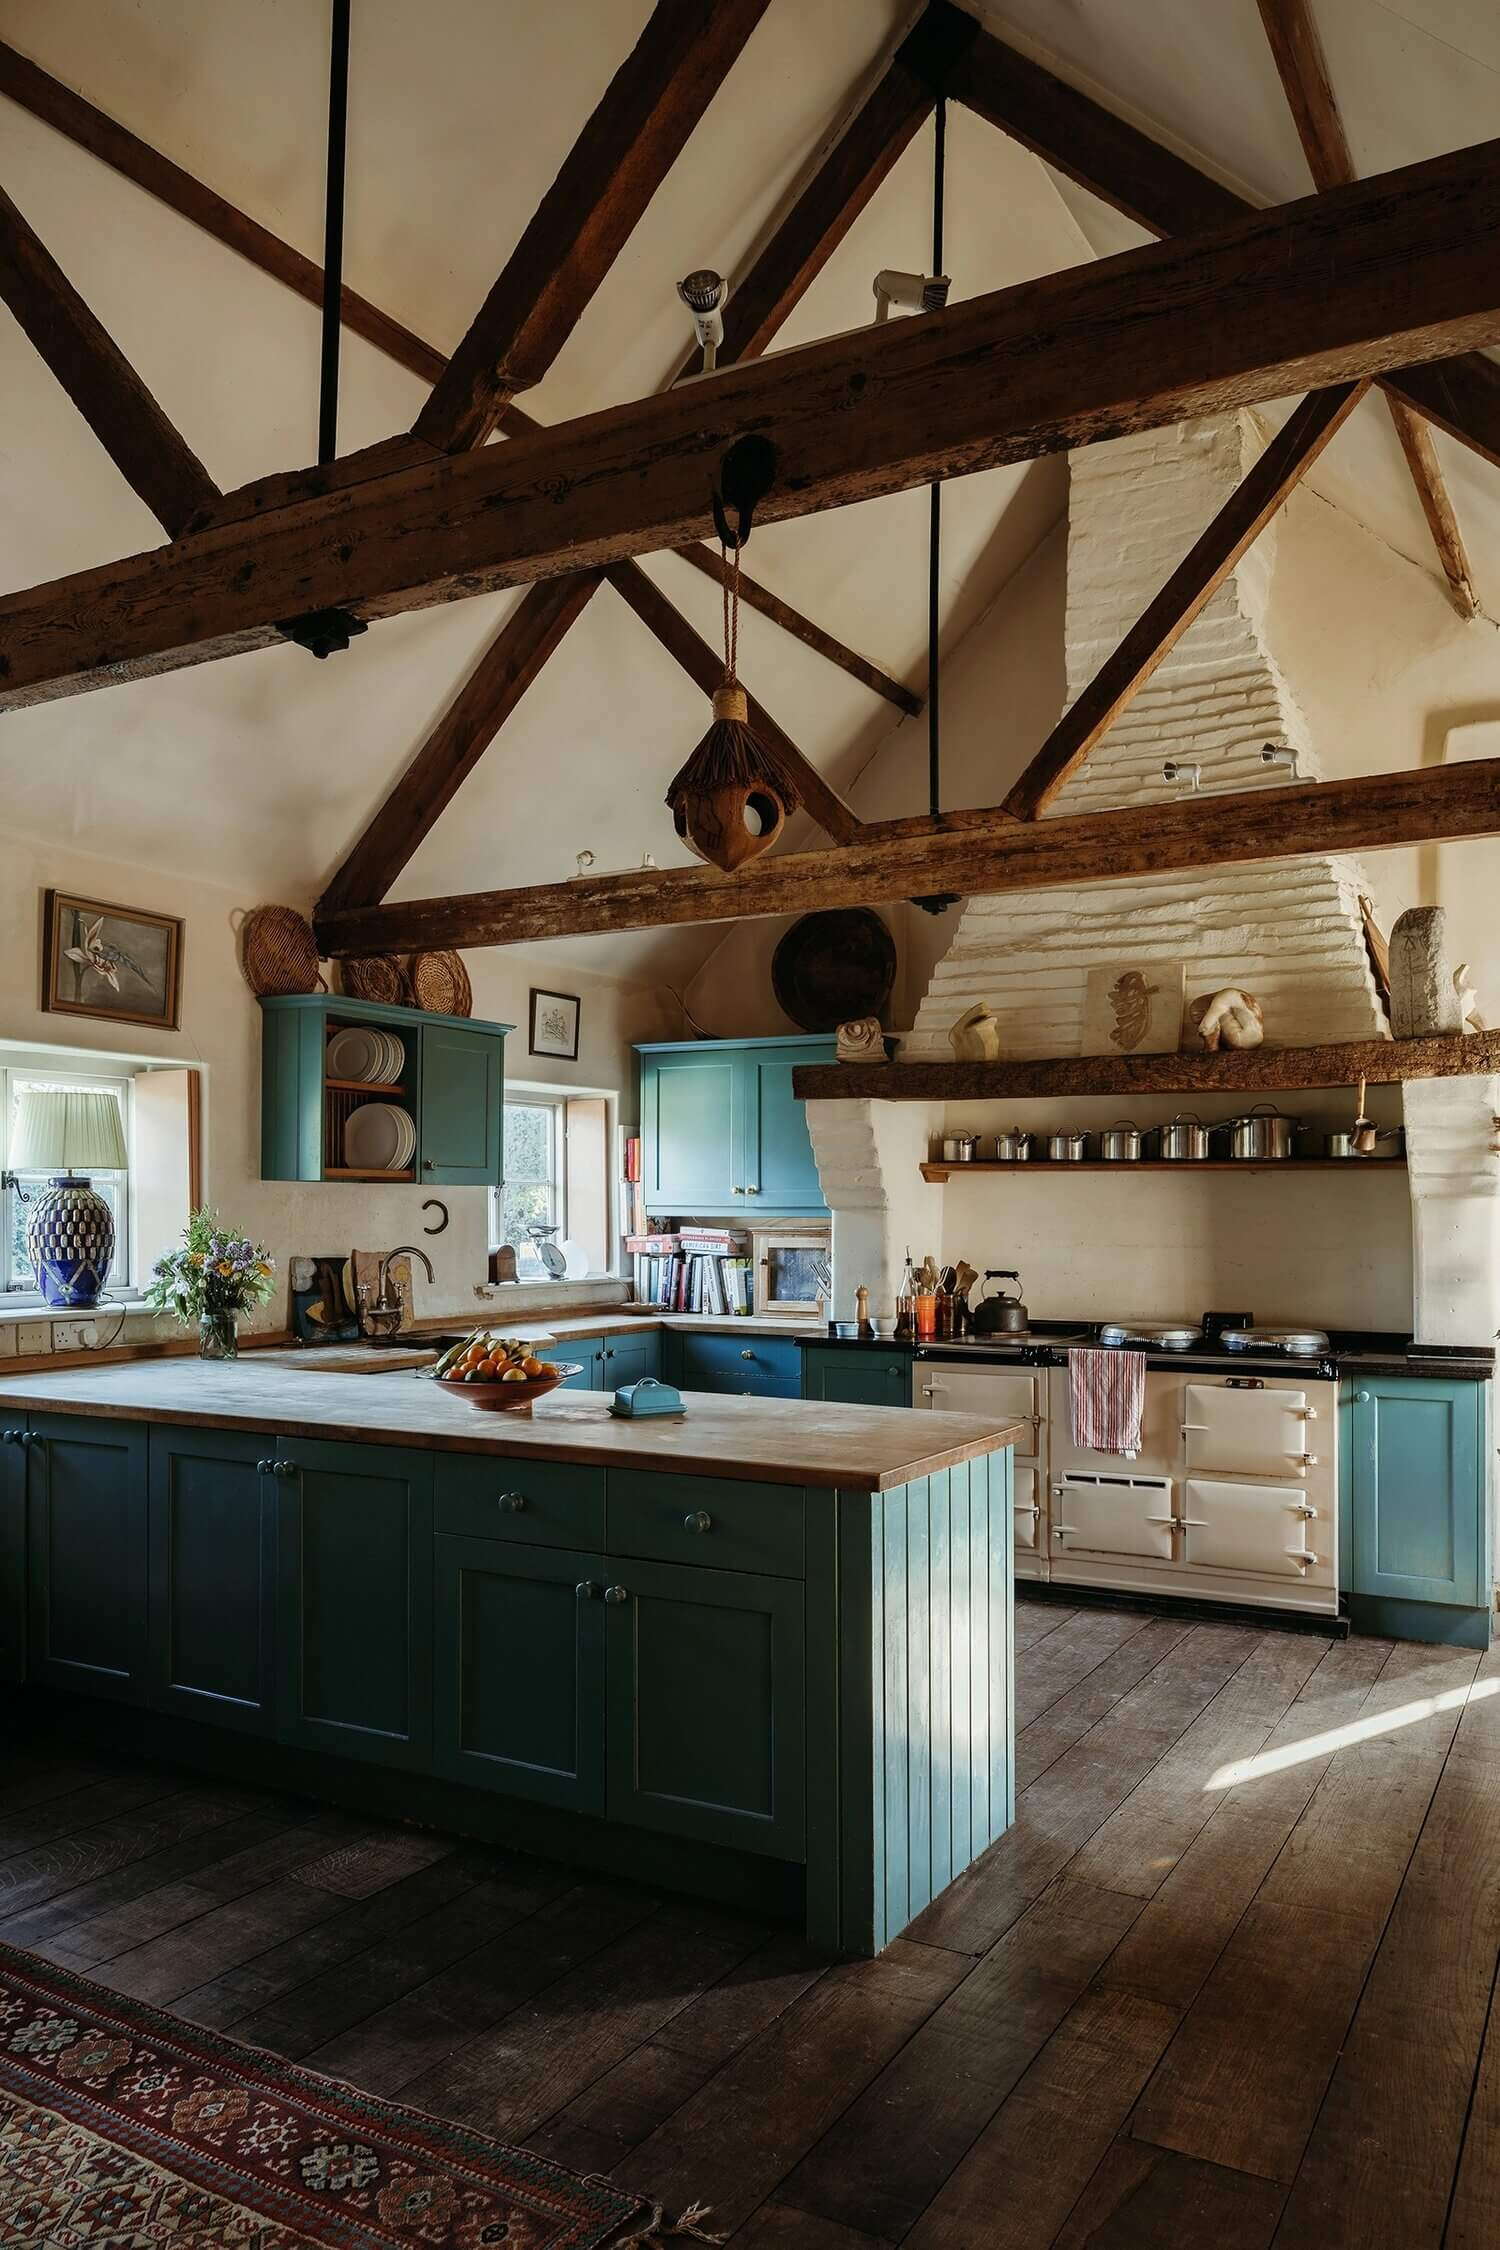 Hunston Manor House: A Renovated 17th-Century Property in West Sussex